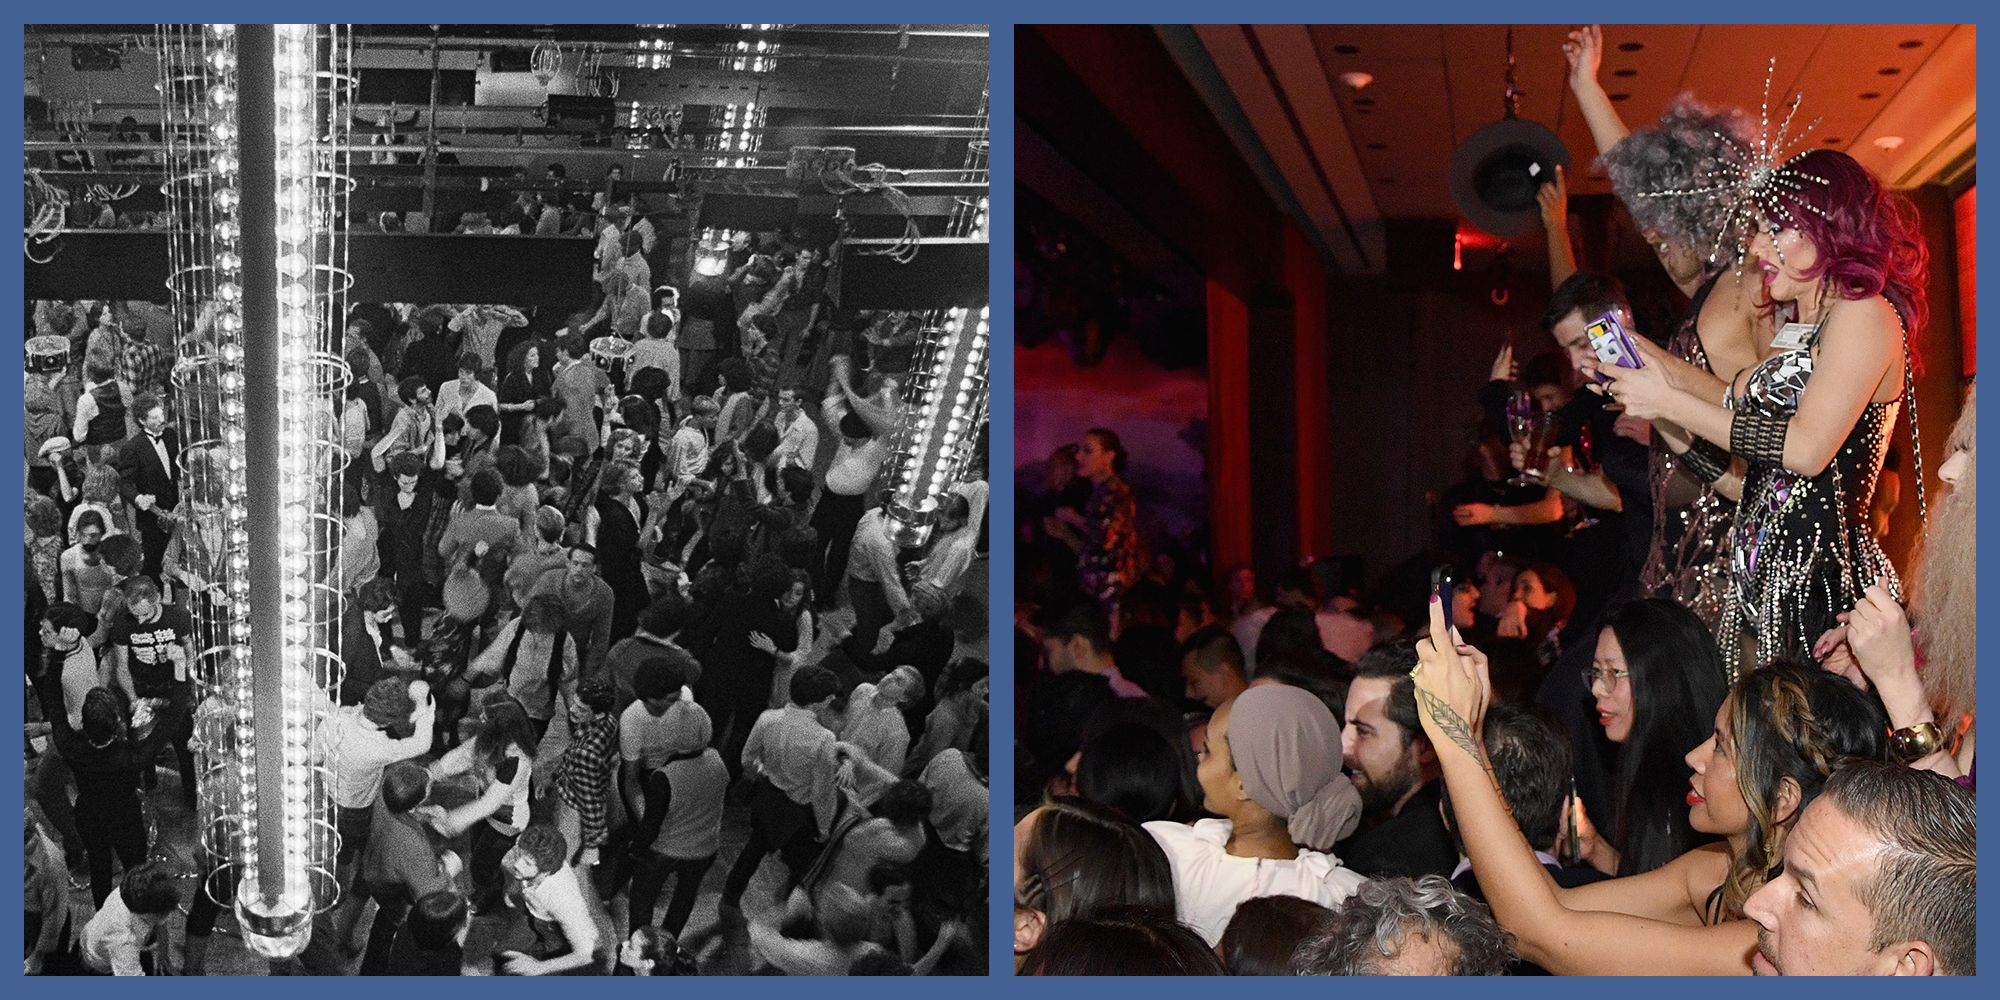 Partygoers at Studio 54 on the left and at the Times Square Edition on the right.